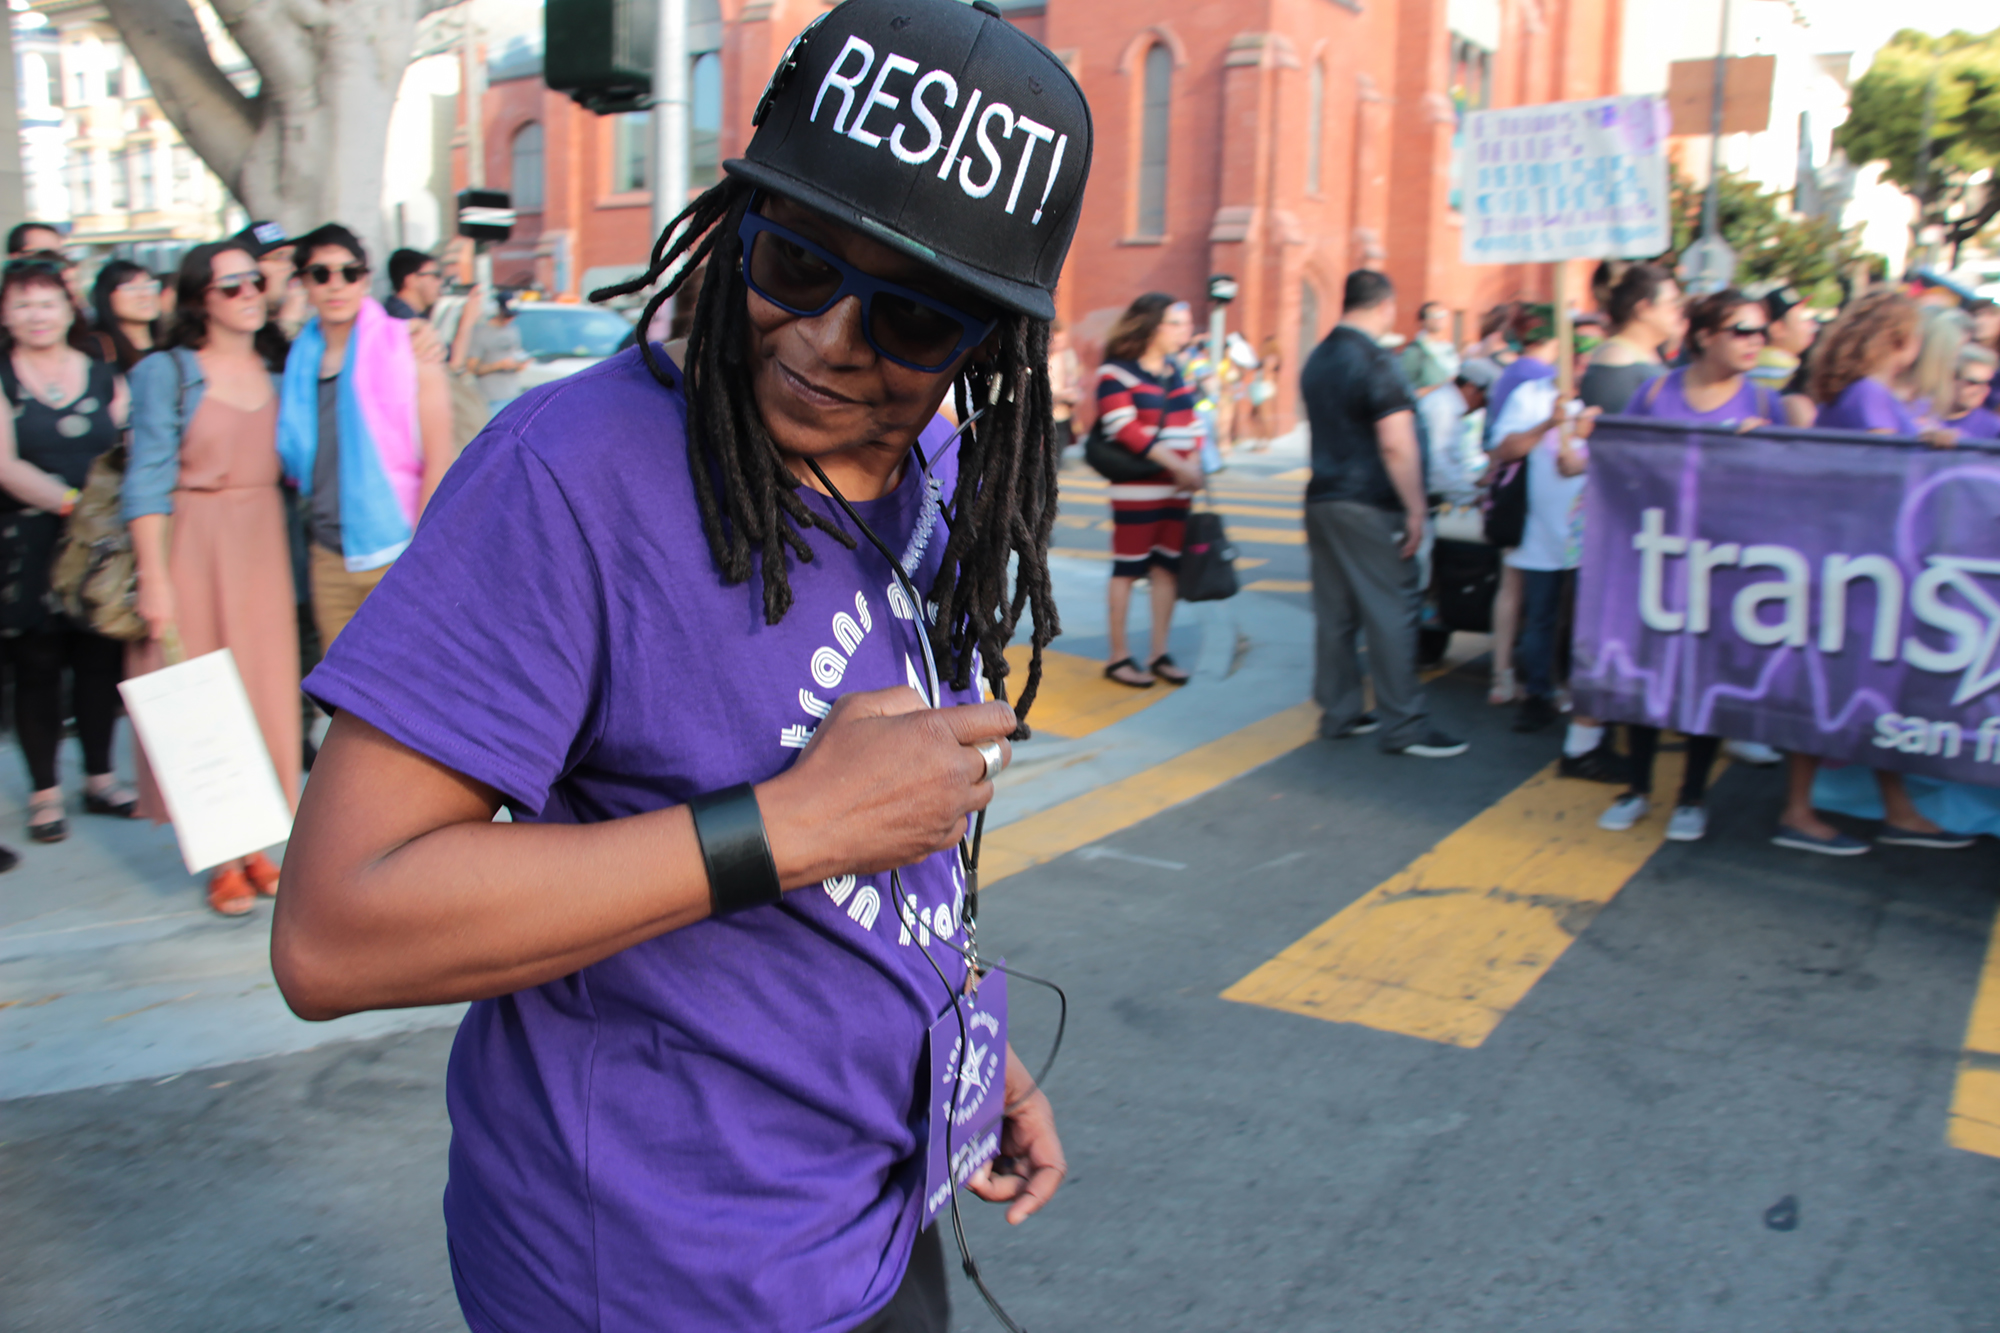 Trans March SF - Resist - Alex U. Inn